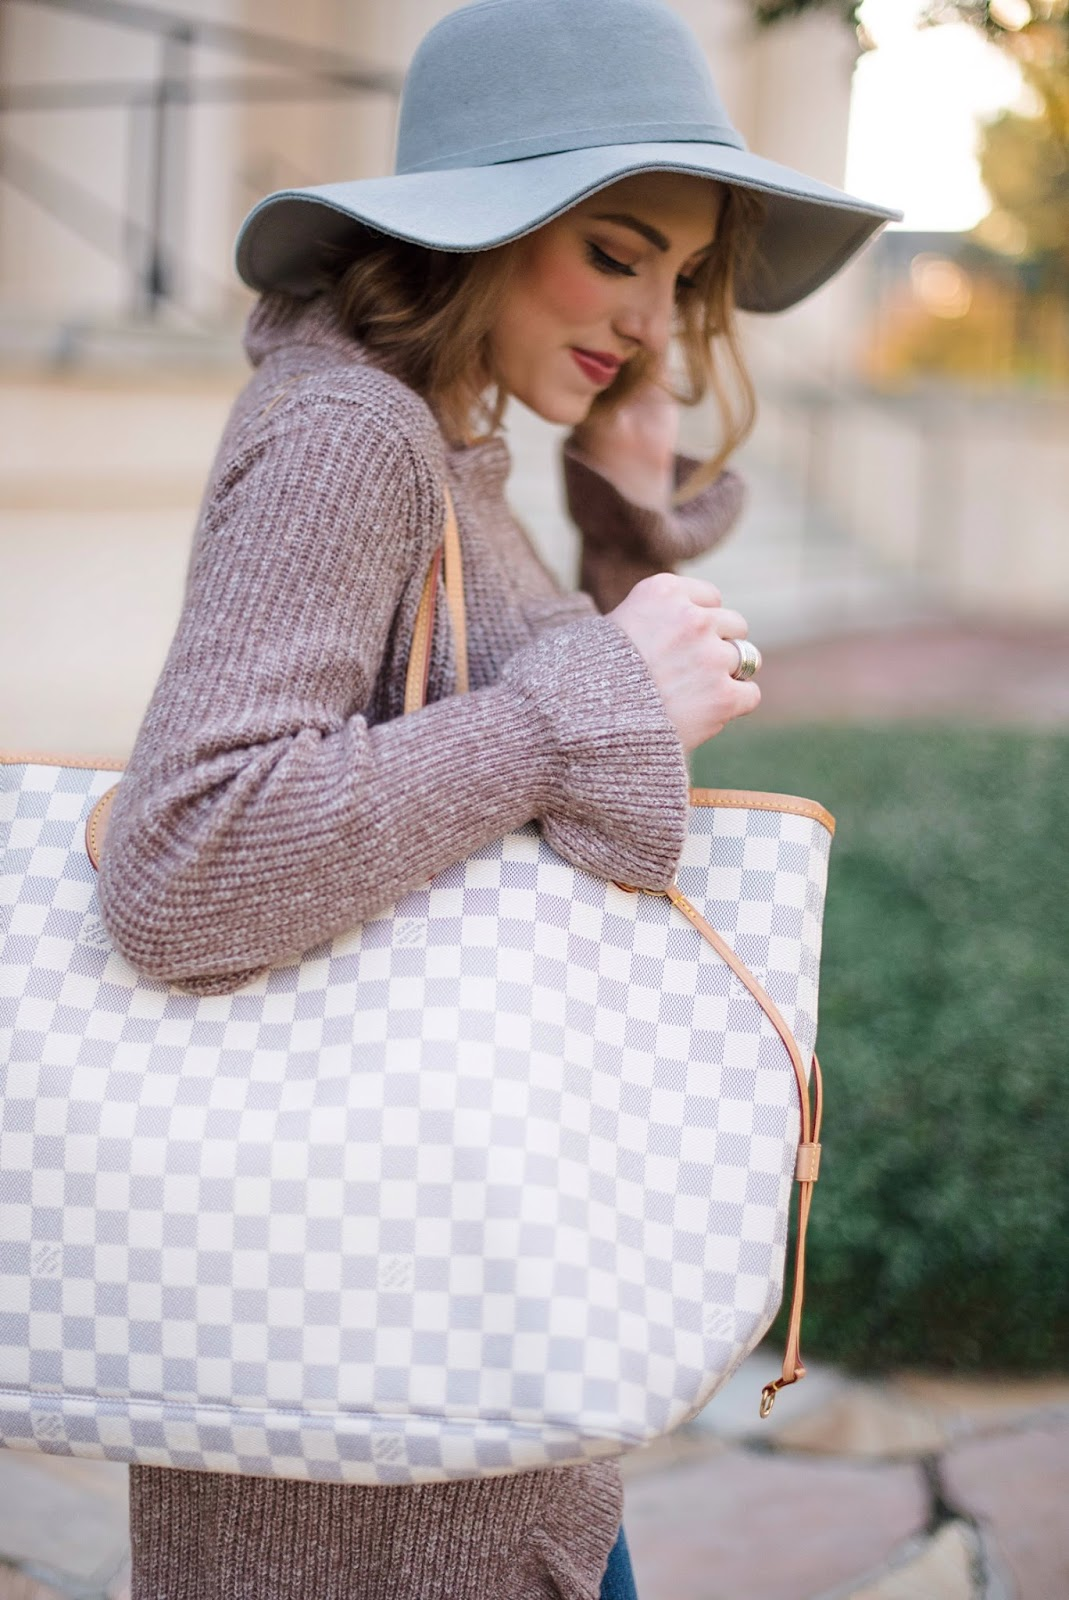 Louis Vuitton Neverfull - Something Delightful Blog